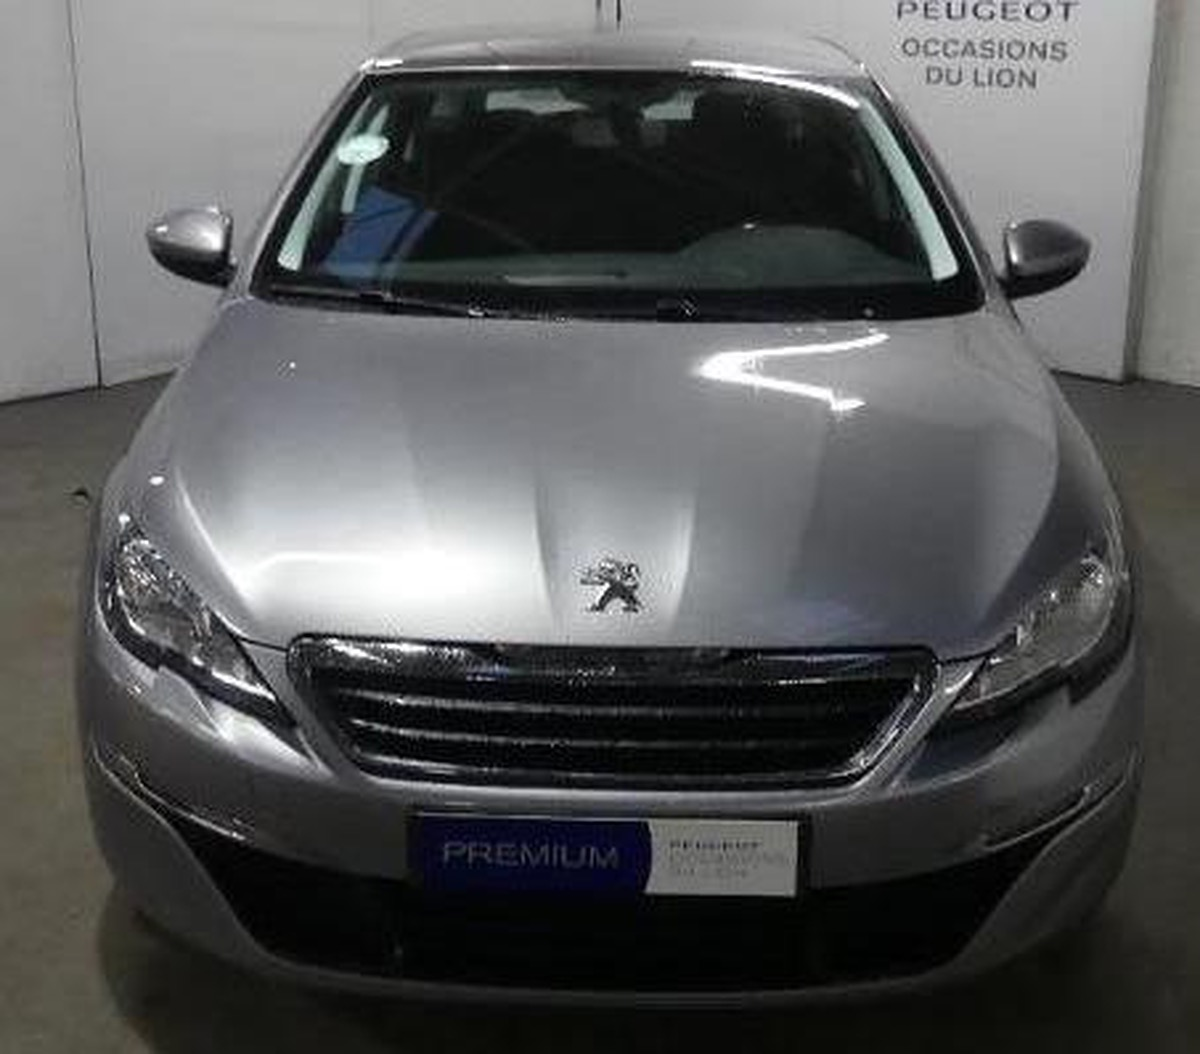 Peugeot 308 SW HDI 100 BUSINESS GPS 98986Kms 10/16